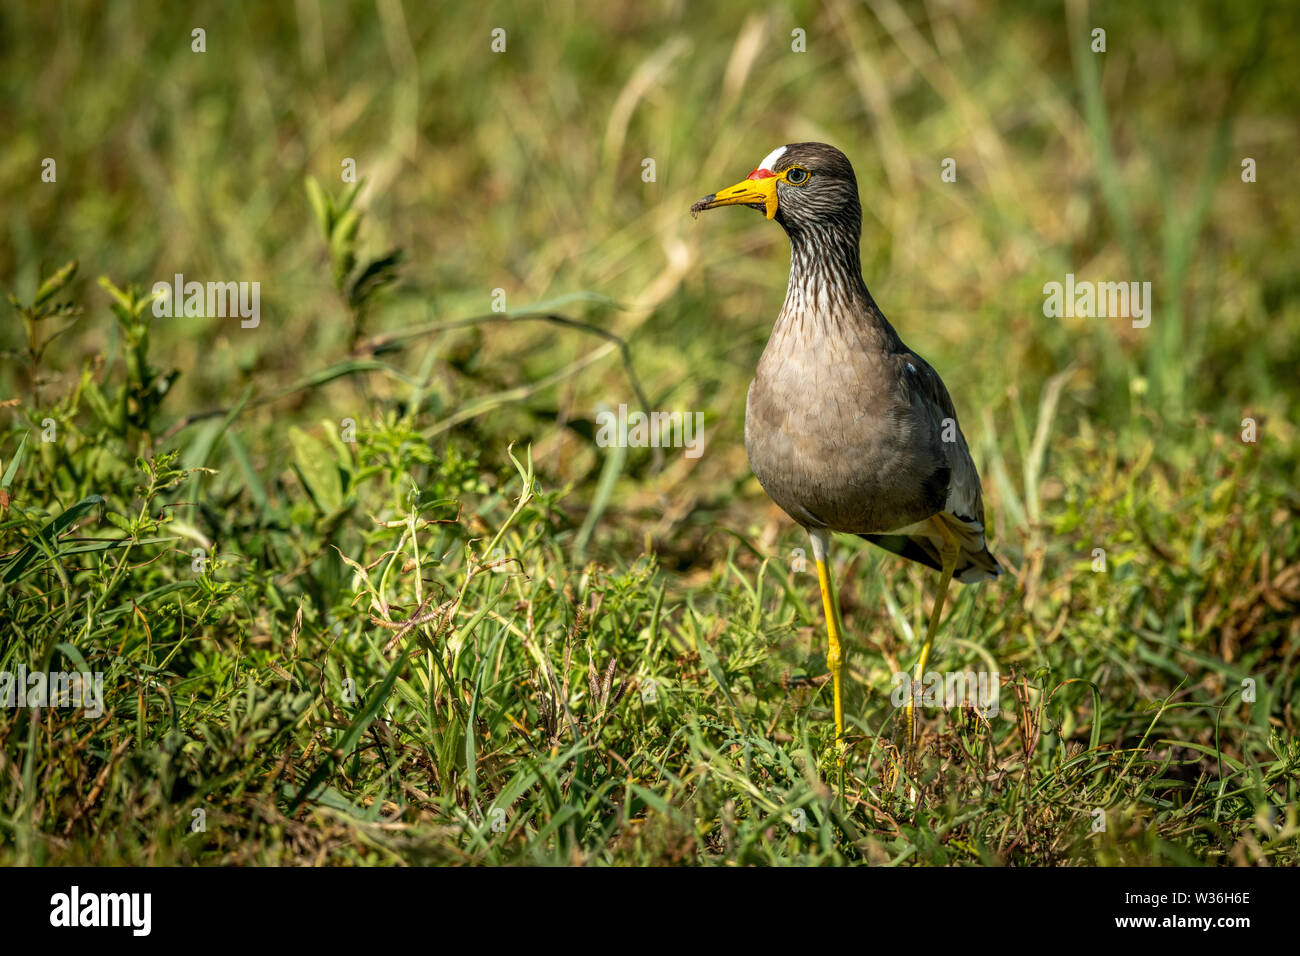 African wattled lapwing in grass eyeing camera - Stock Image